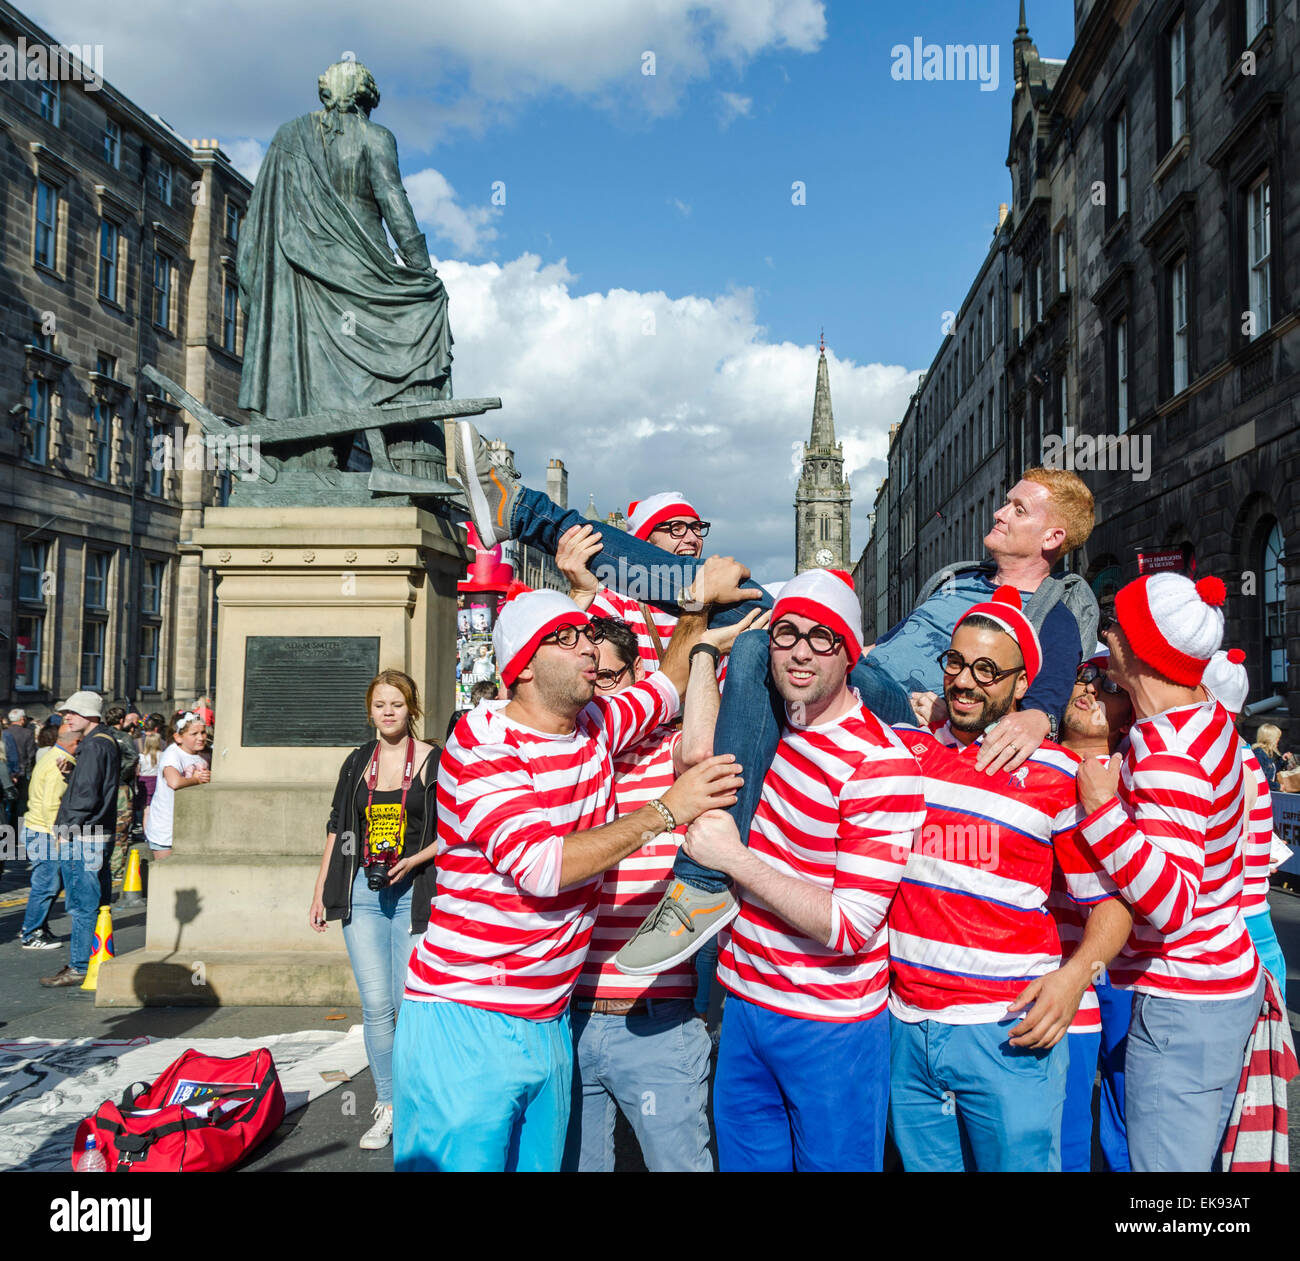 Troupe of Wallys loose on the streets of Edinburgh during Festival Season - Stock Image